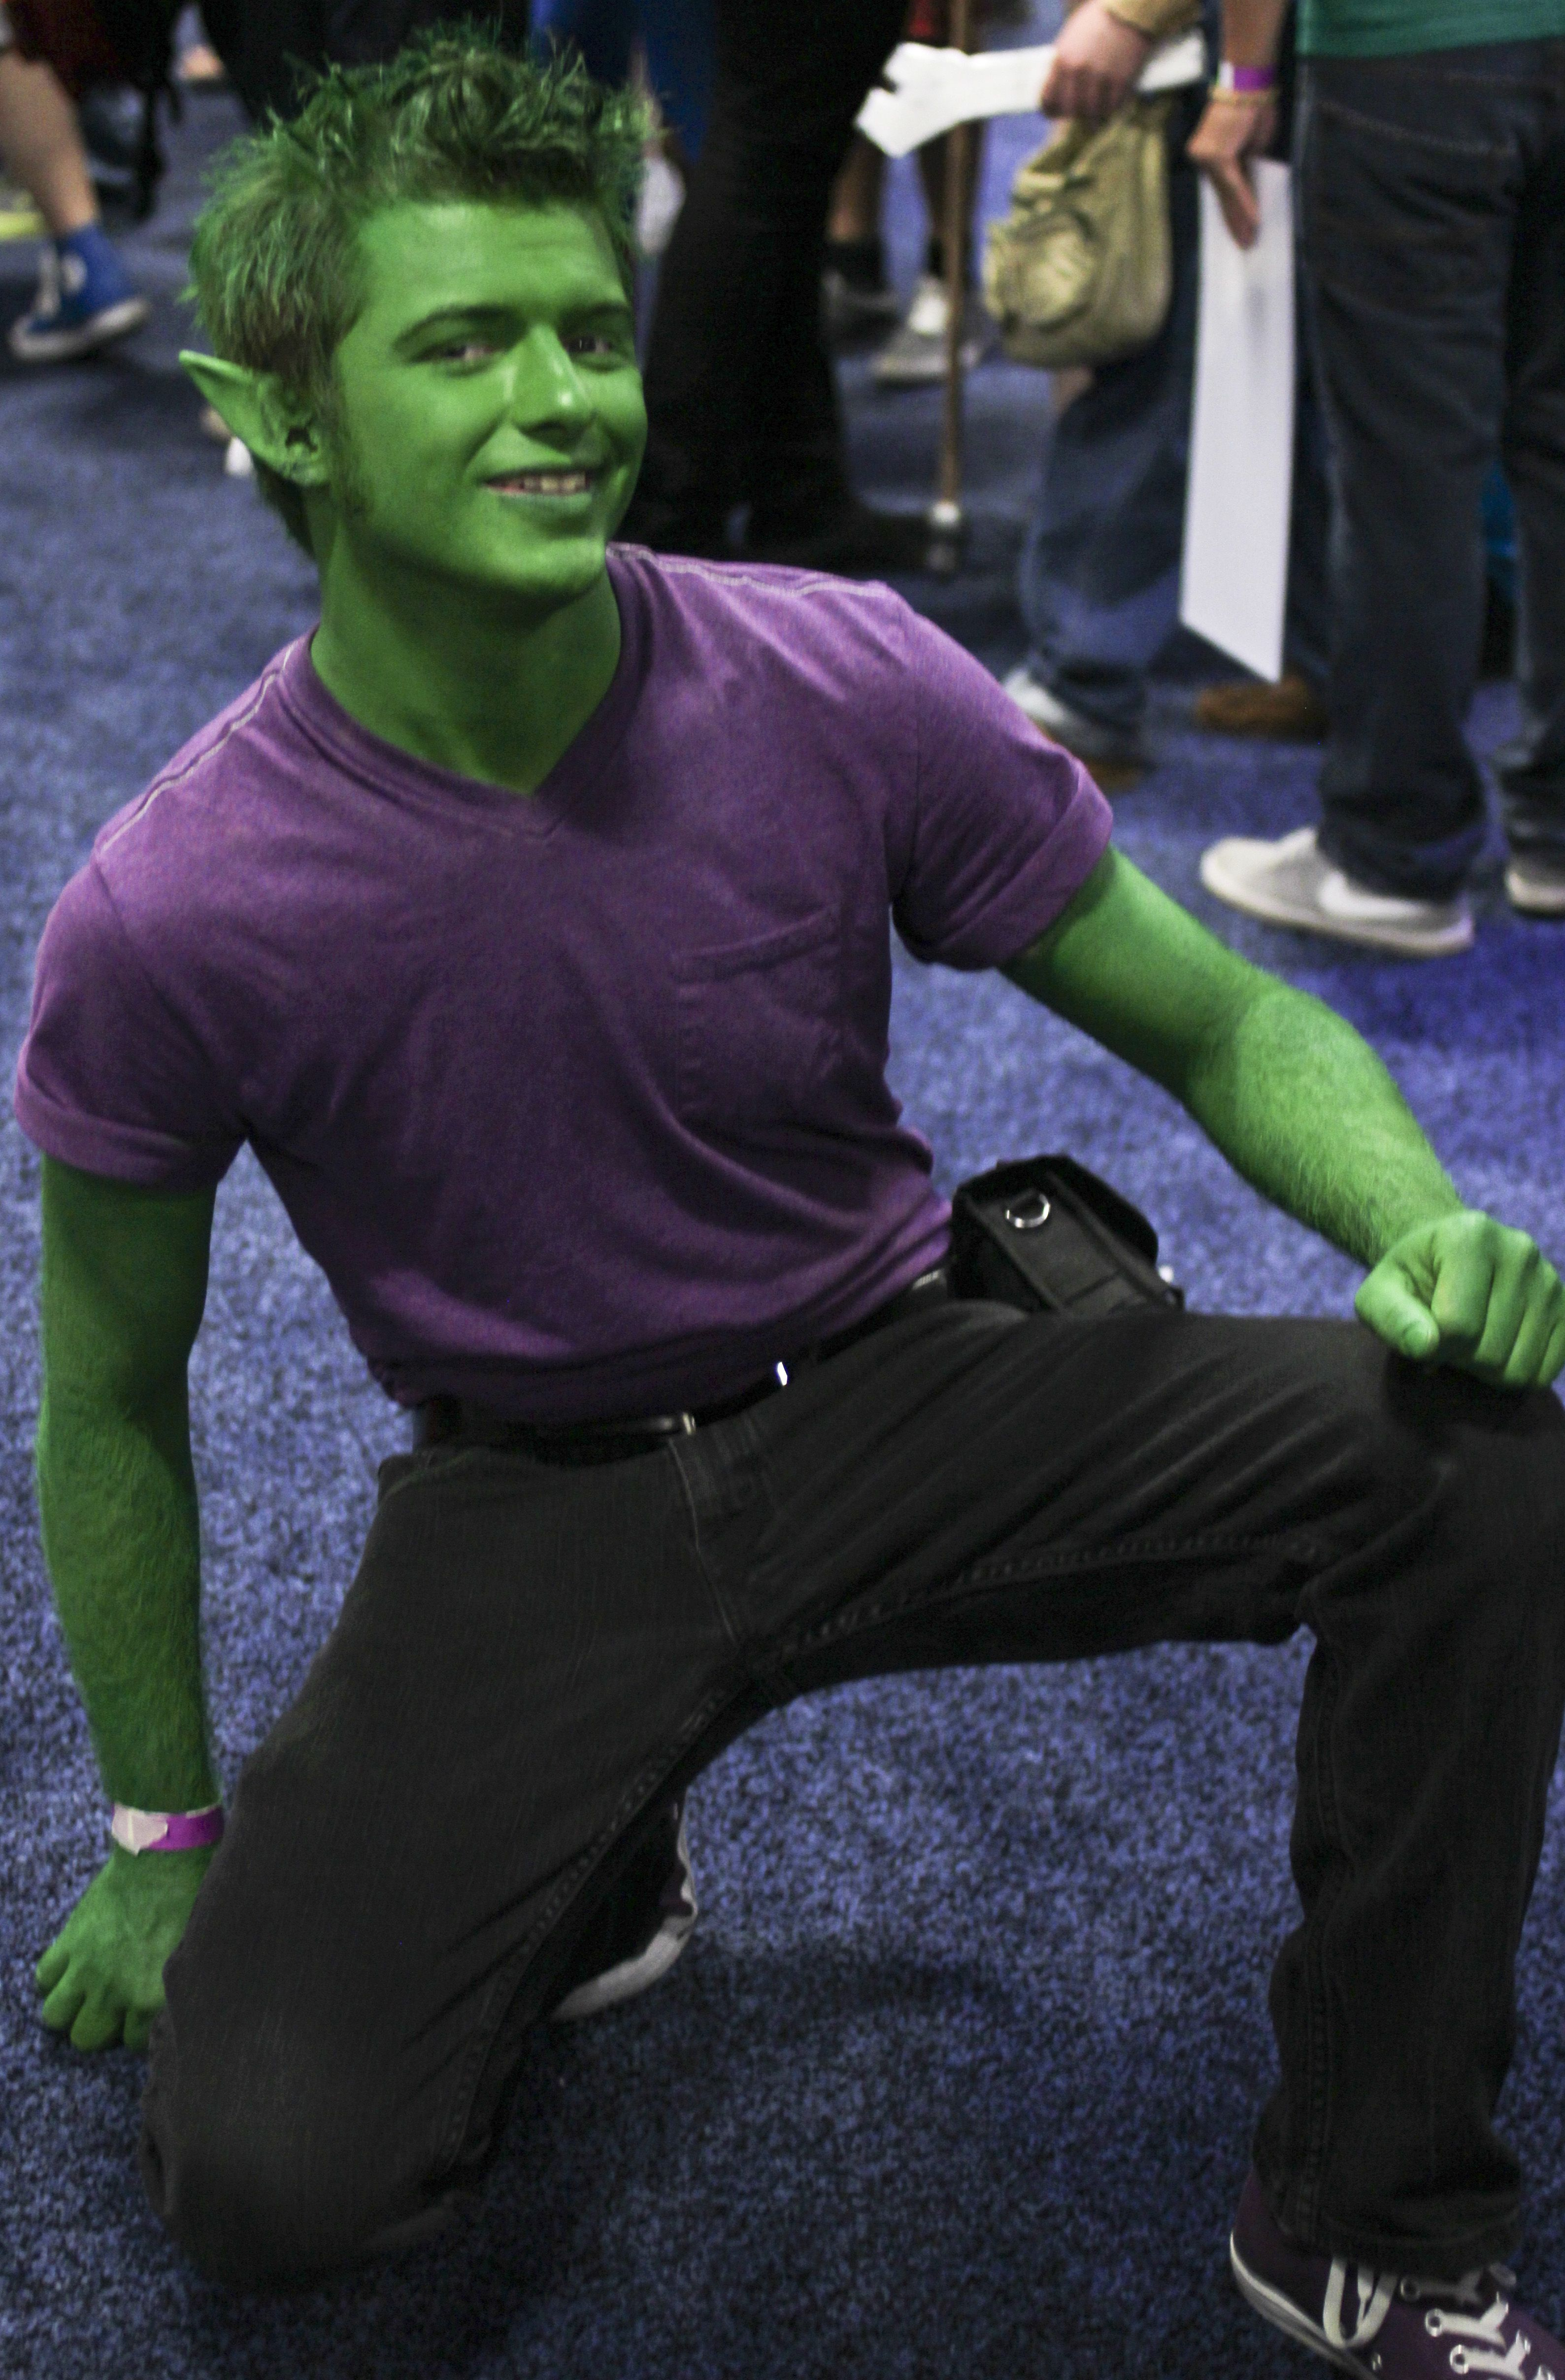 Hair color 2018 for boy very simple but all in all itus a great beast boy cosplay i donut